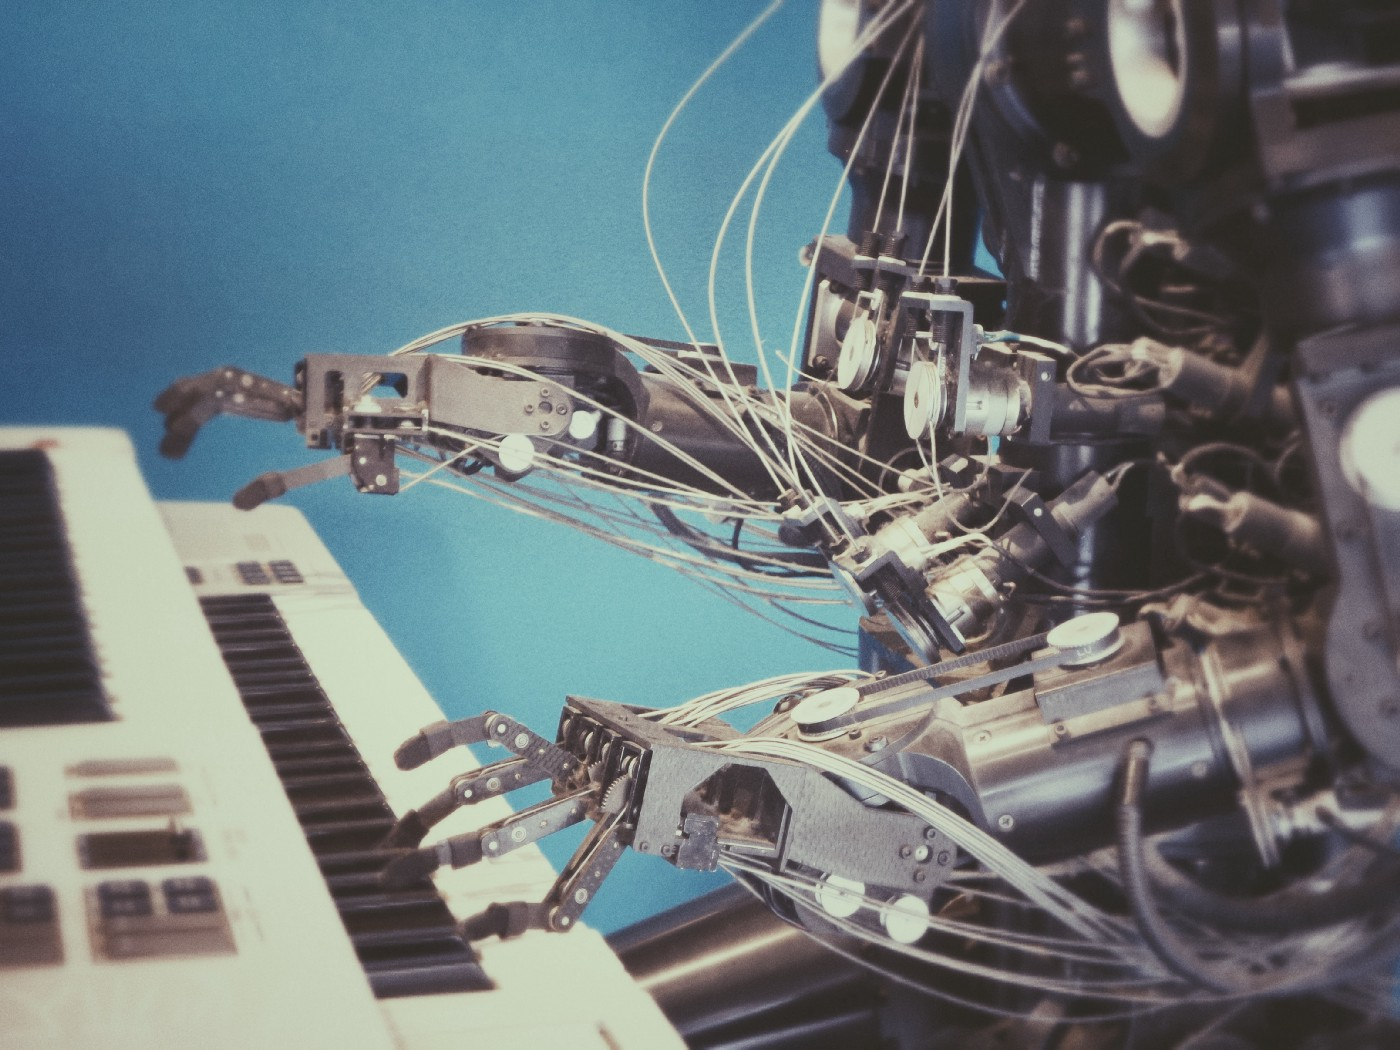 A robot playing piano.